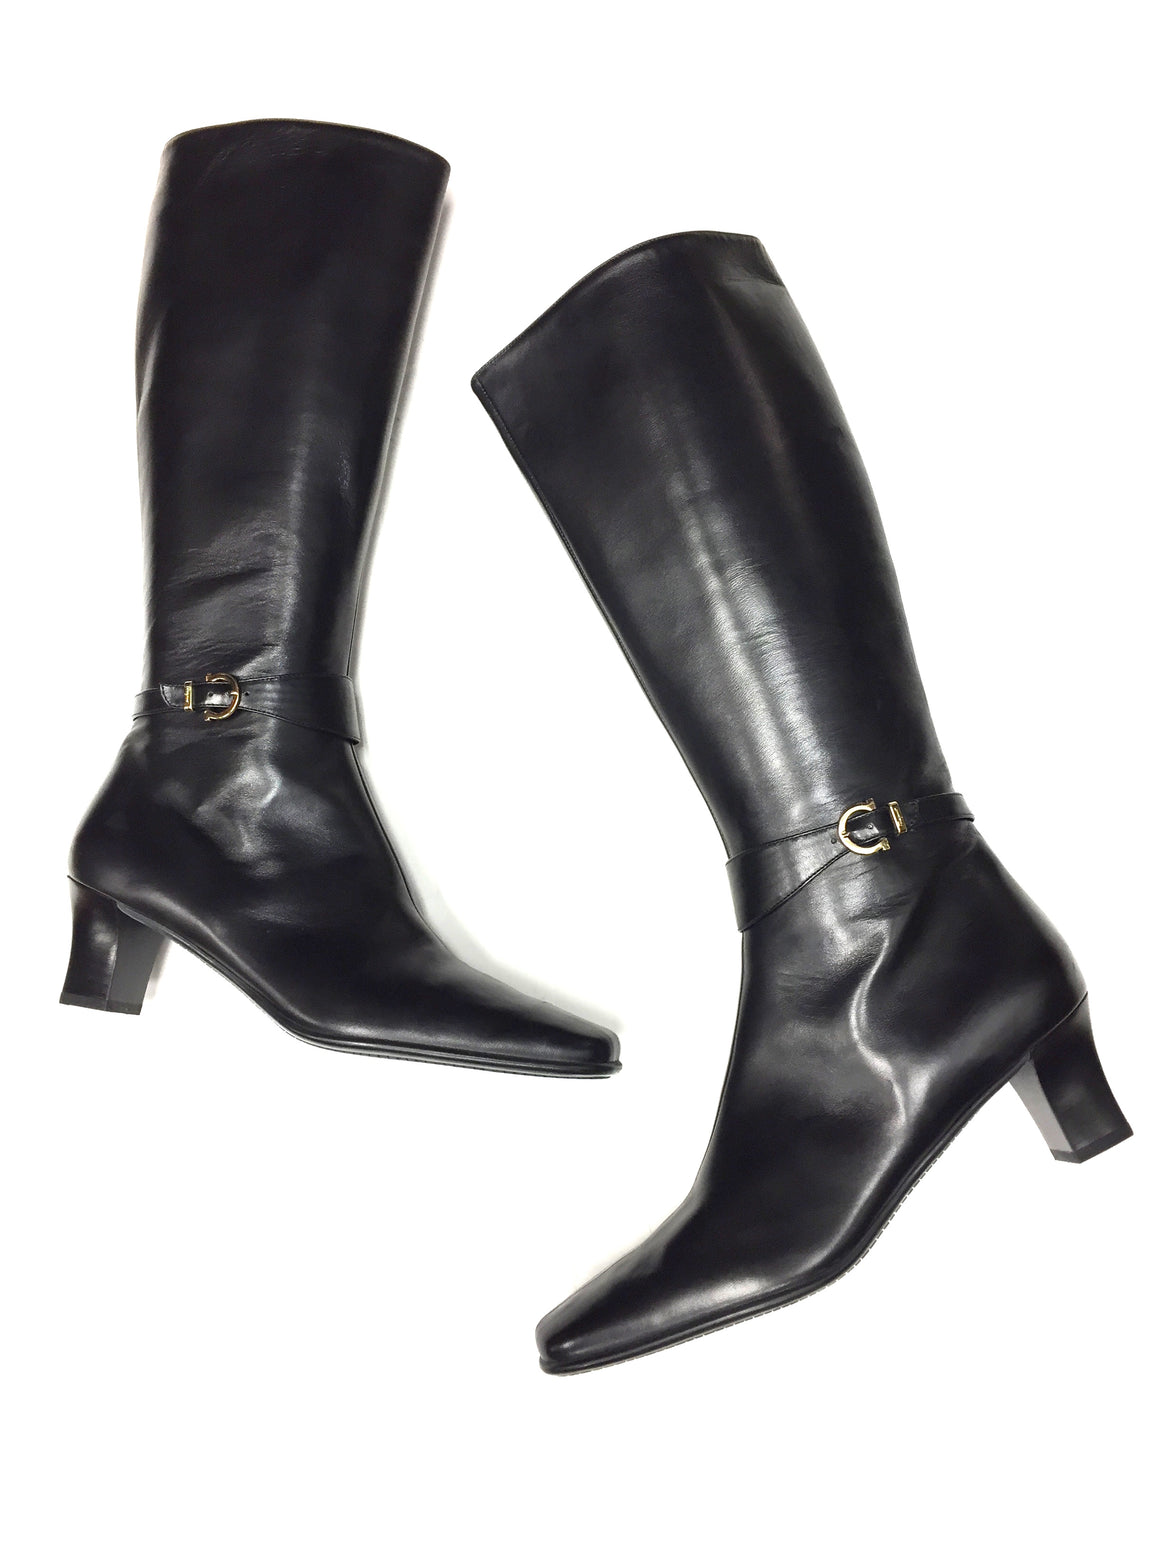 bisbiz.com FERRAGAMO Black Leather Gancini Buckle Accent Low-Heel Tall Boots Size: 9.5AA - Bis Luxury Resale